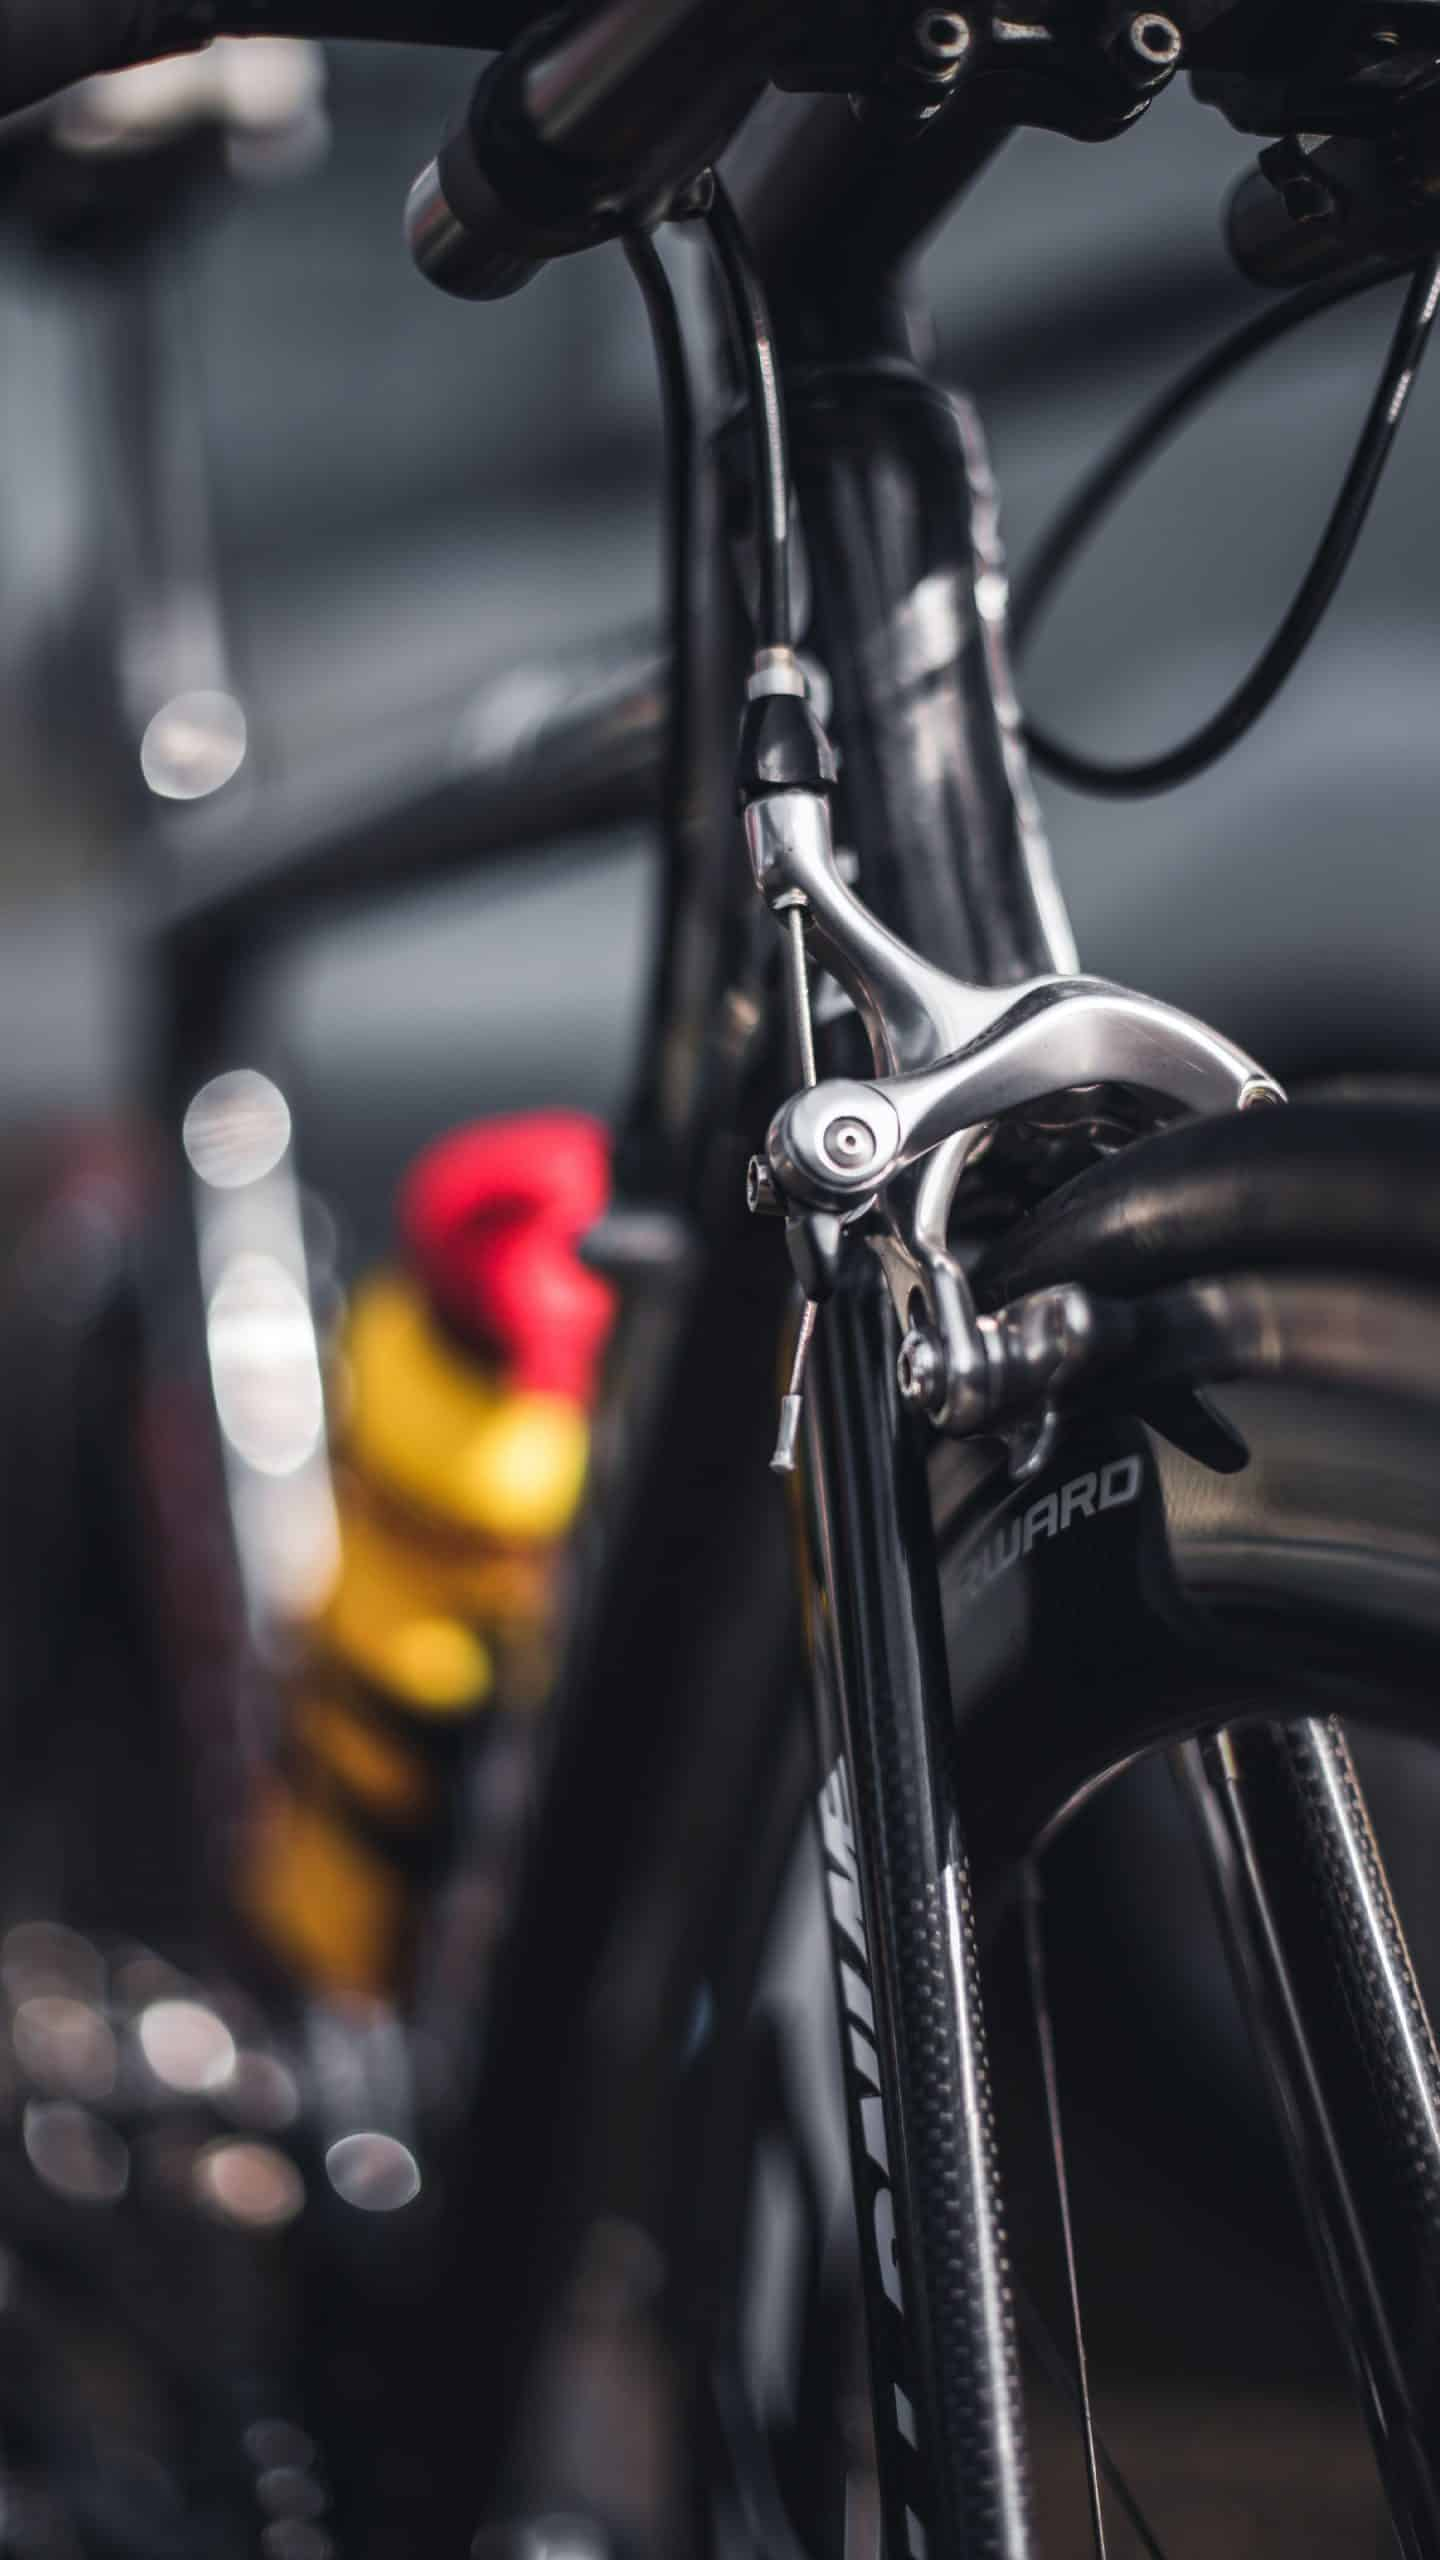 When buying a road bike you need to consider whether you need rim or disc brakes.